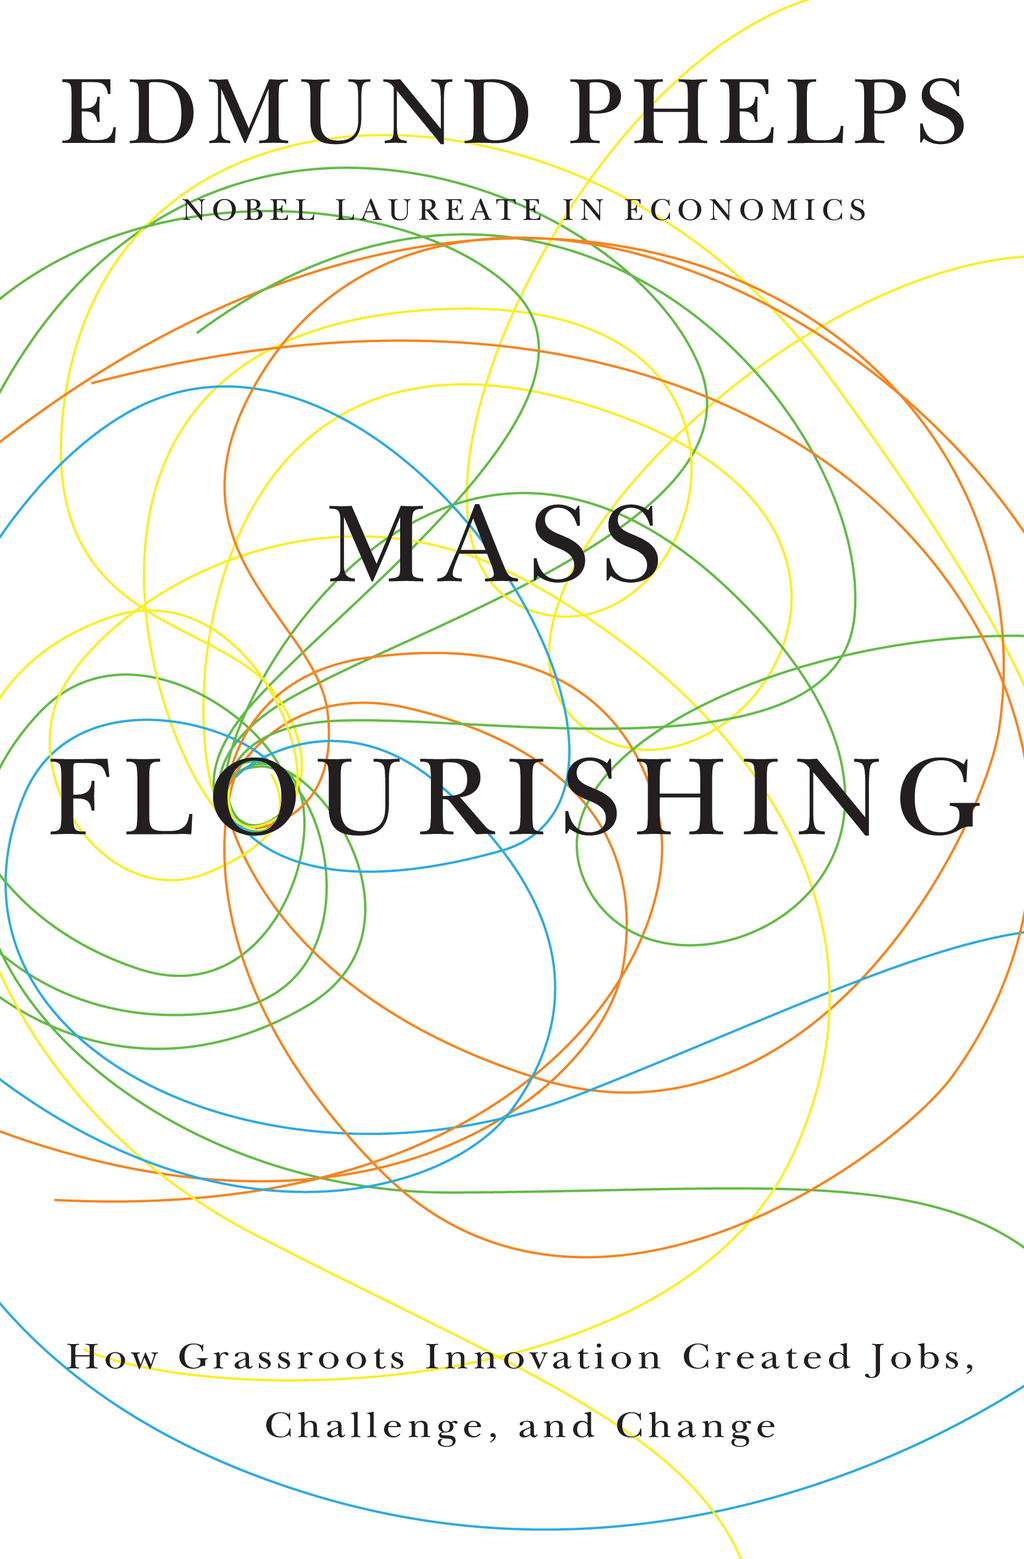 Mass Flourishing How Grassroots Innovation Created Jobs, Challenge, and Change